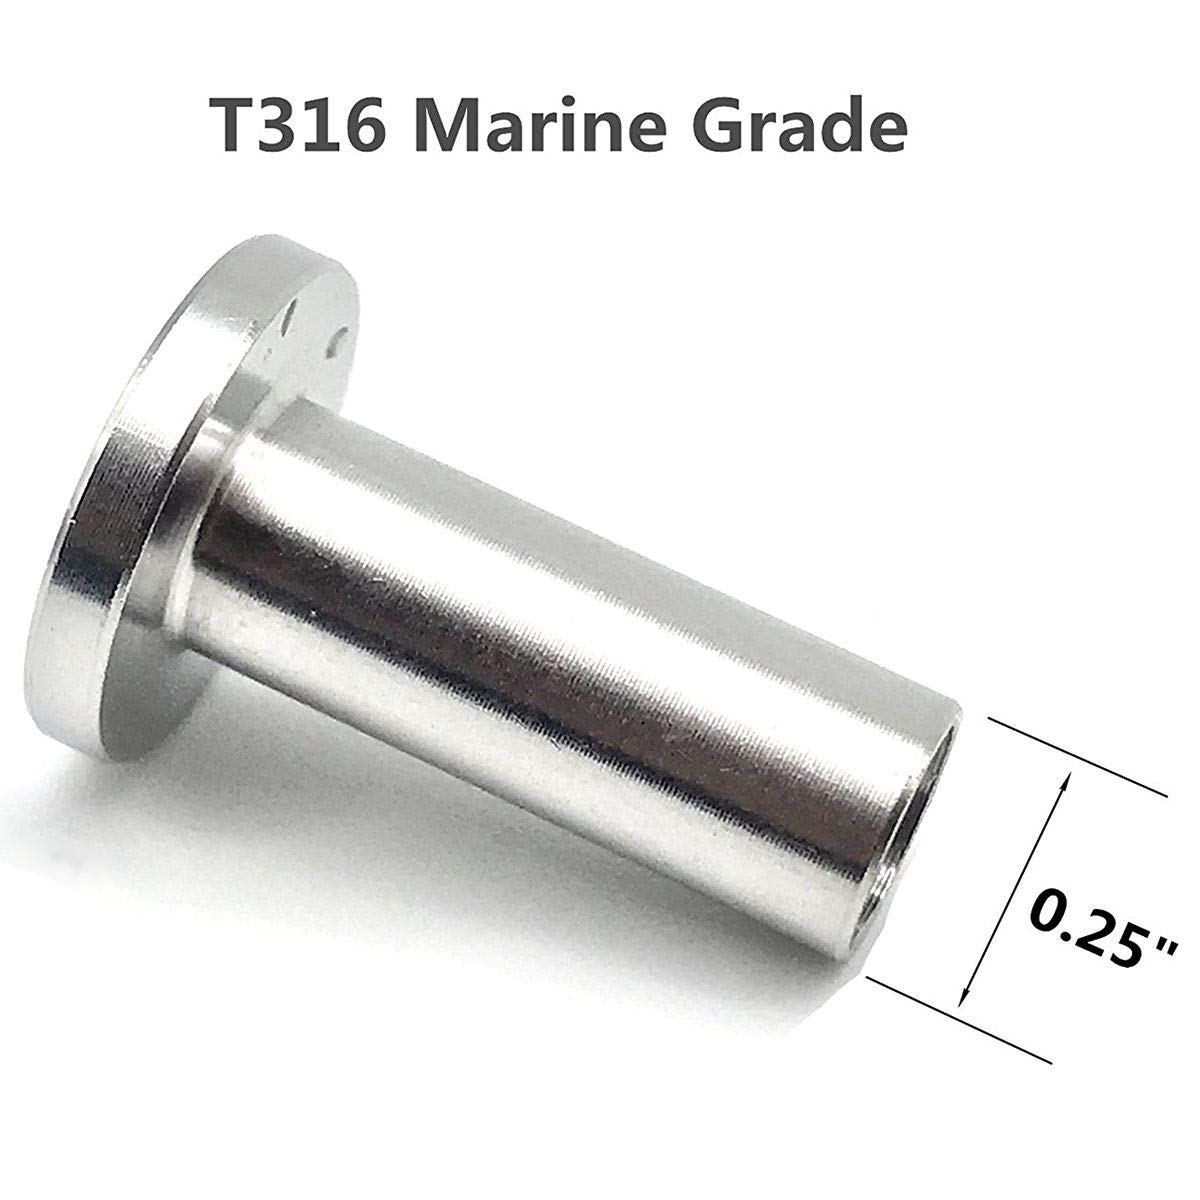 Cikuso Stainless Steel Protector Sleeves for 1//8 inch Cable Railing DIY Balustrade T316 Marine Grade 24 Pack Wood Posts